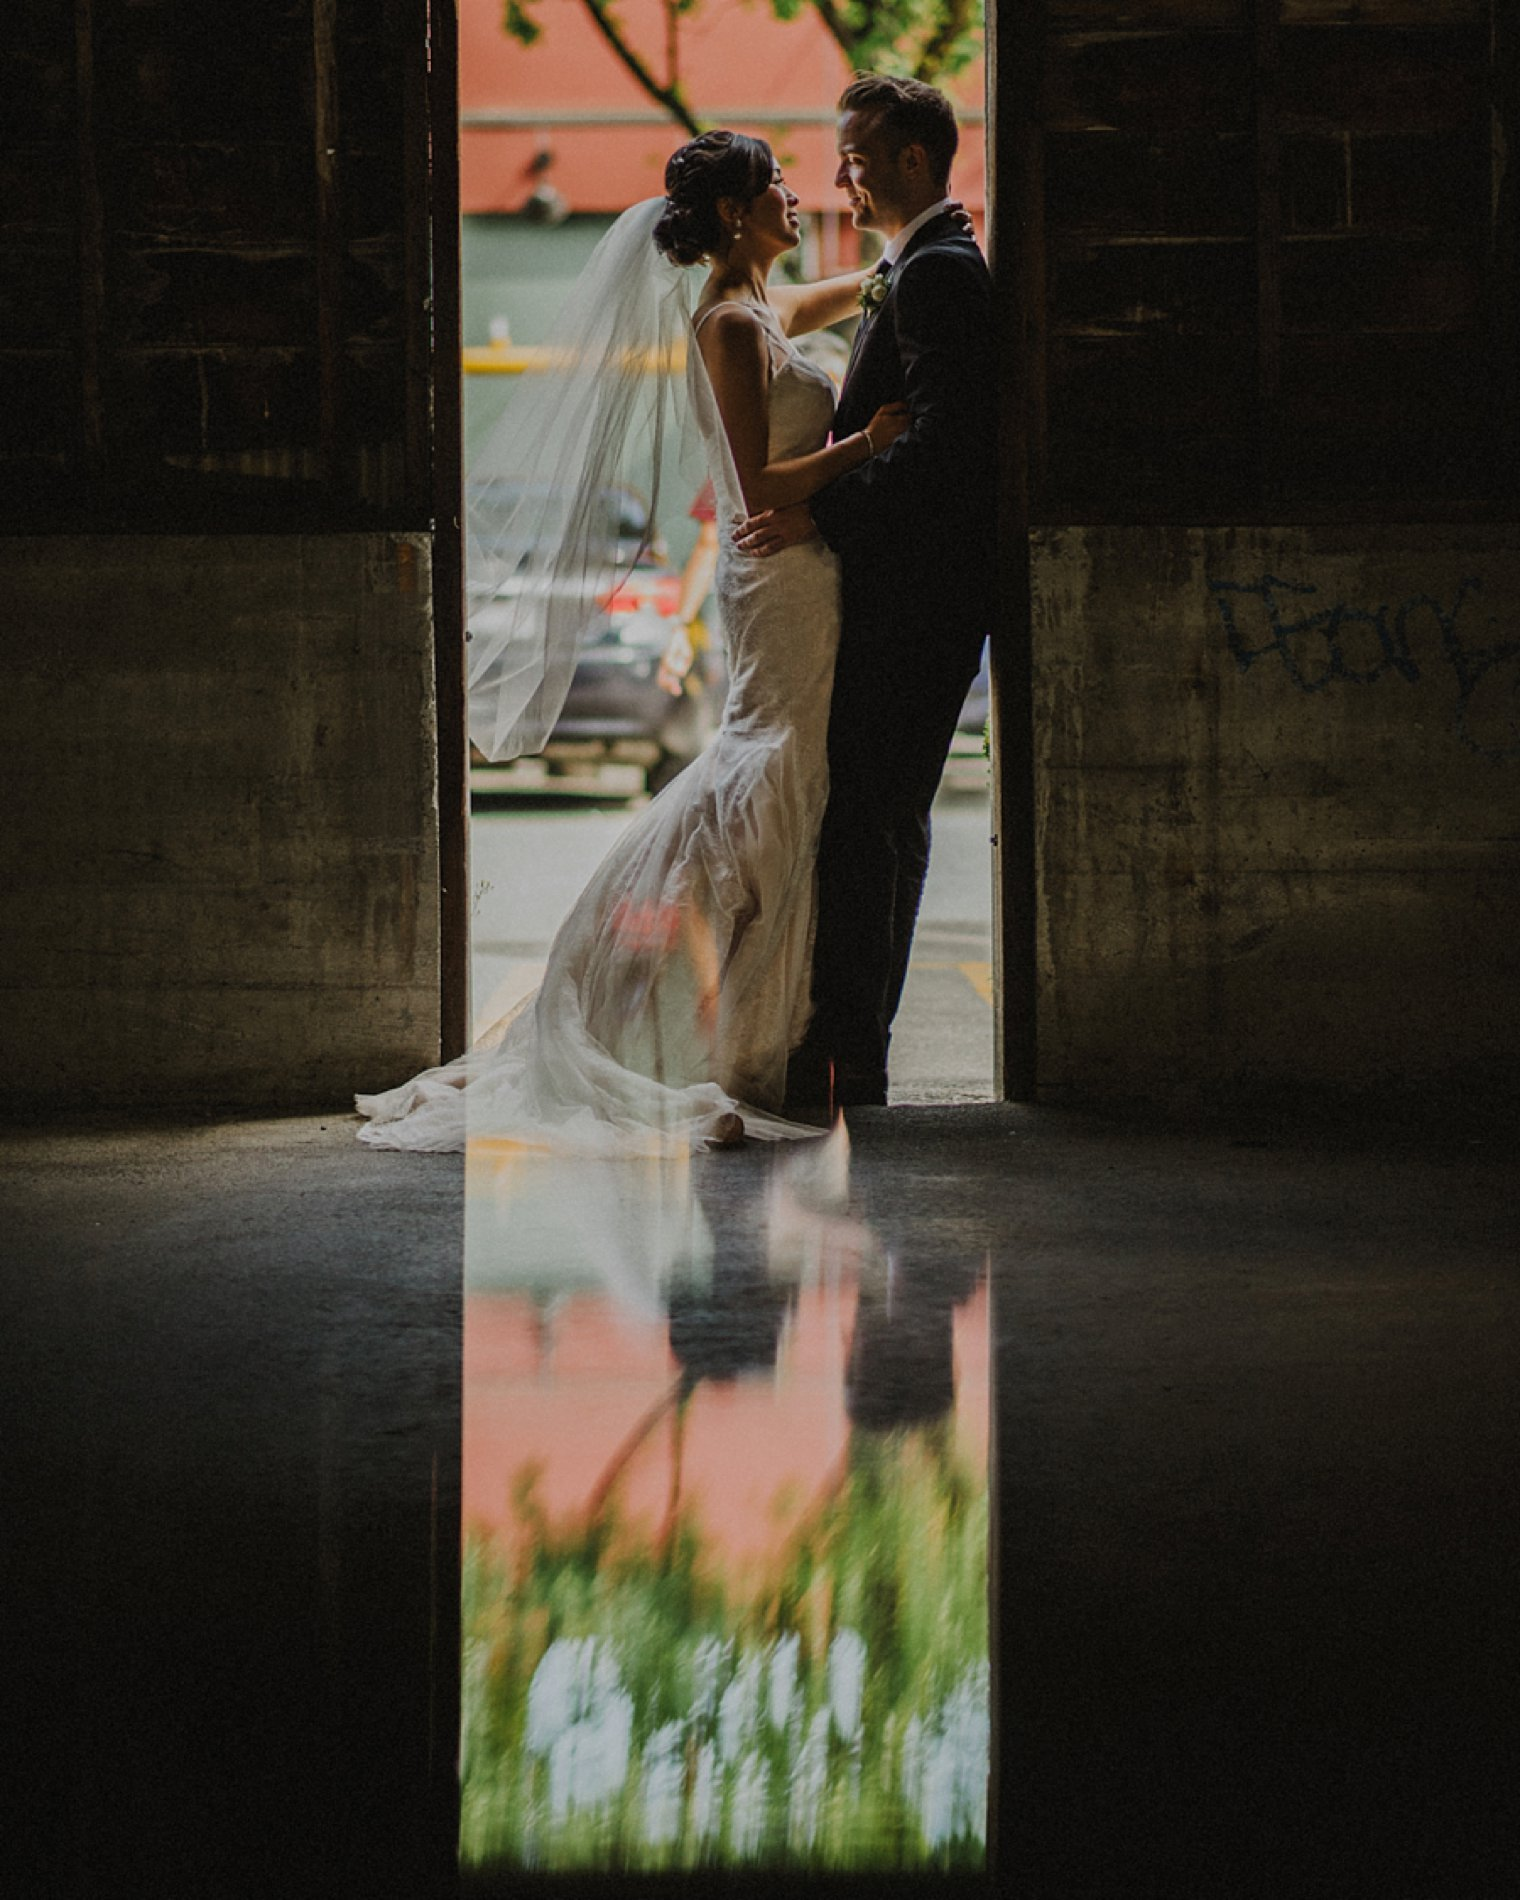 unique wedding portrait at granville island